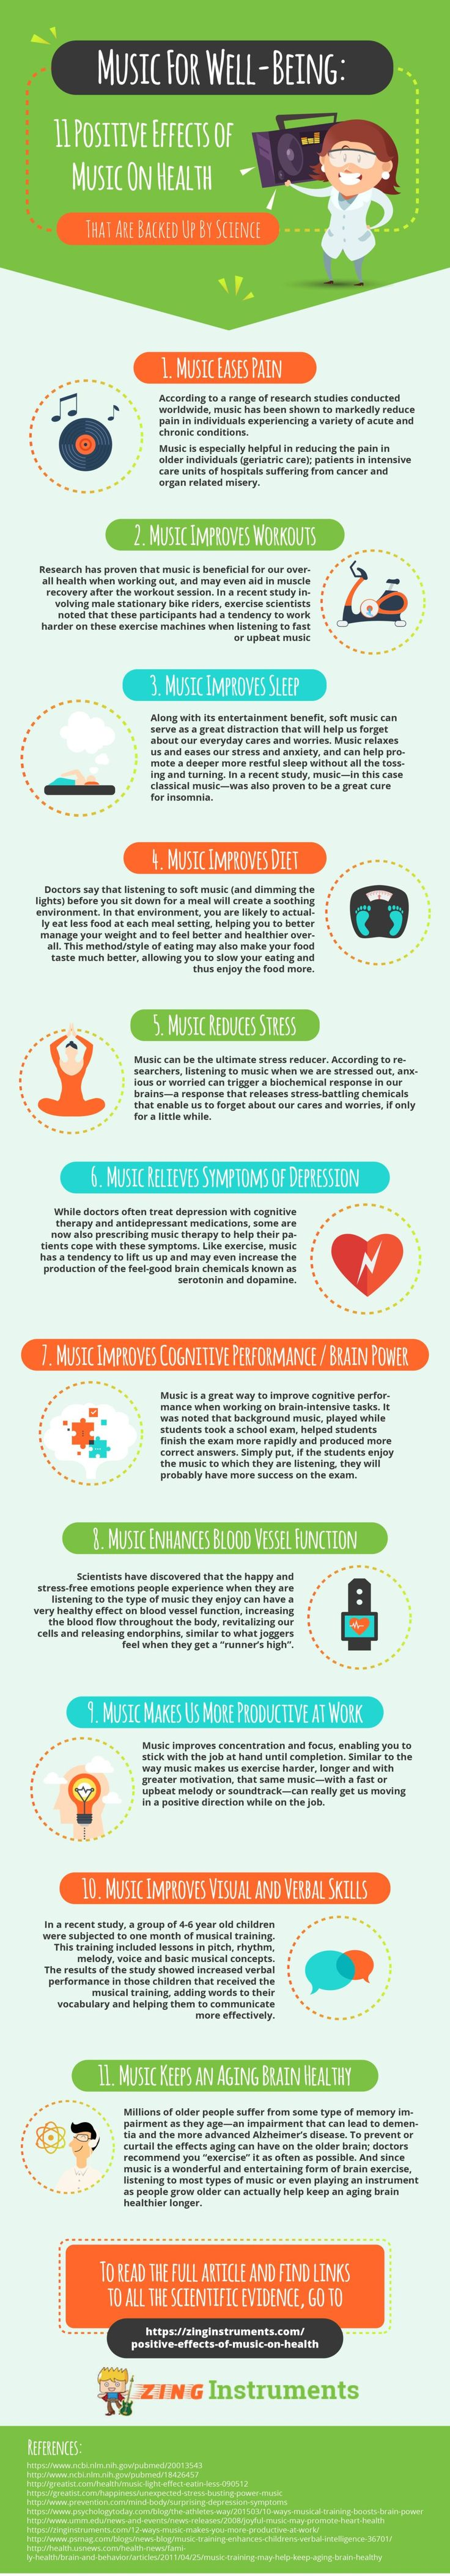 Music has the power to positively impact you in so many ways - mind, body and soul. Here are 11 ways that music can support your physical health in particular. via @DailyPoz